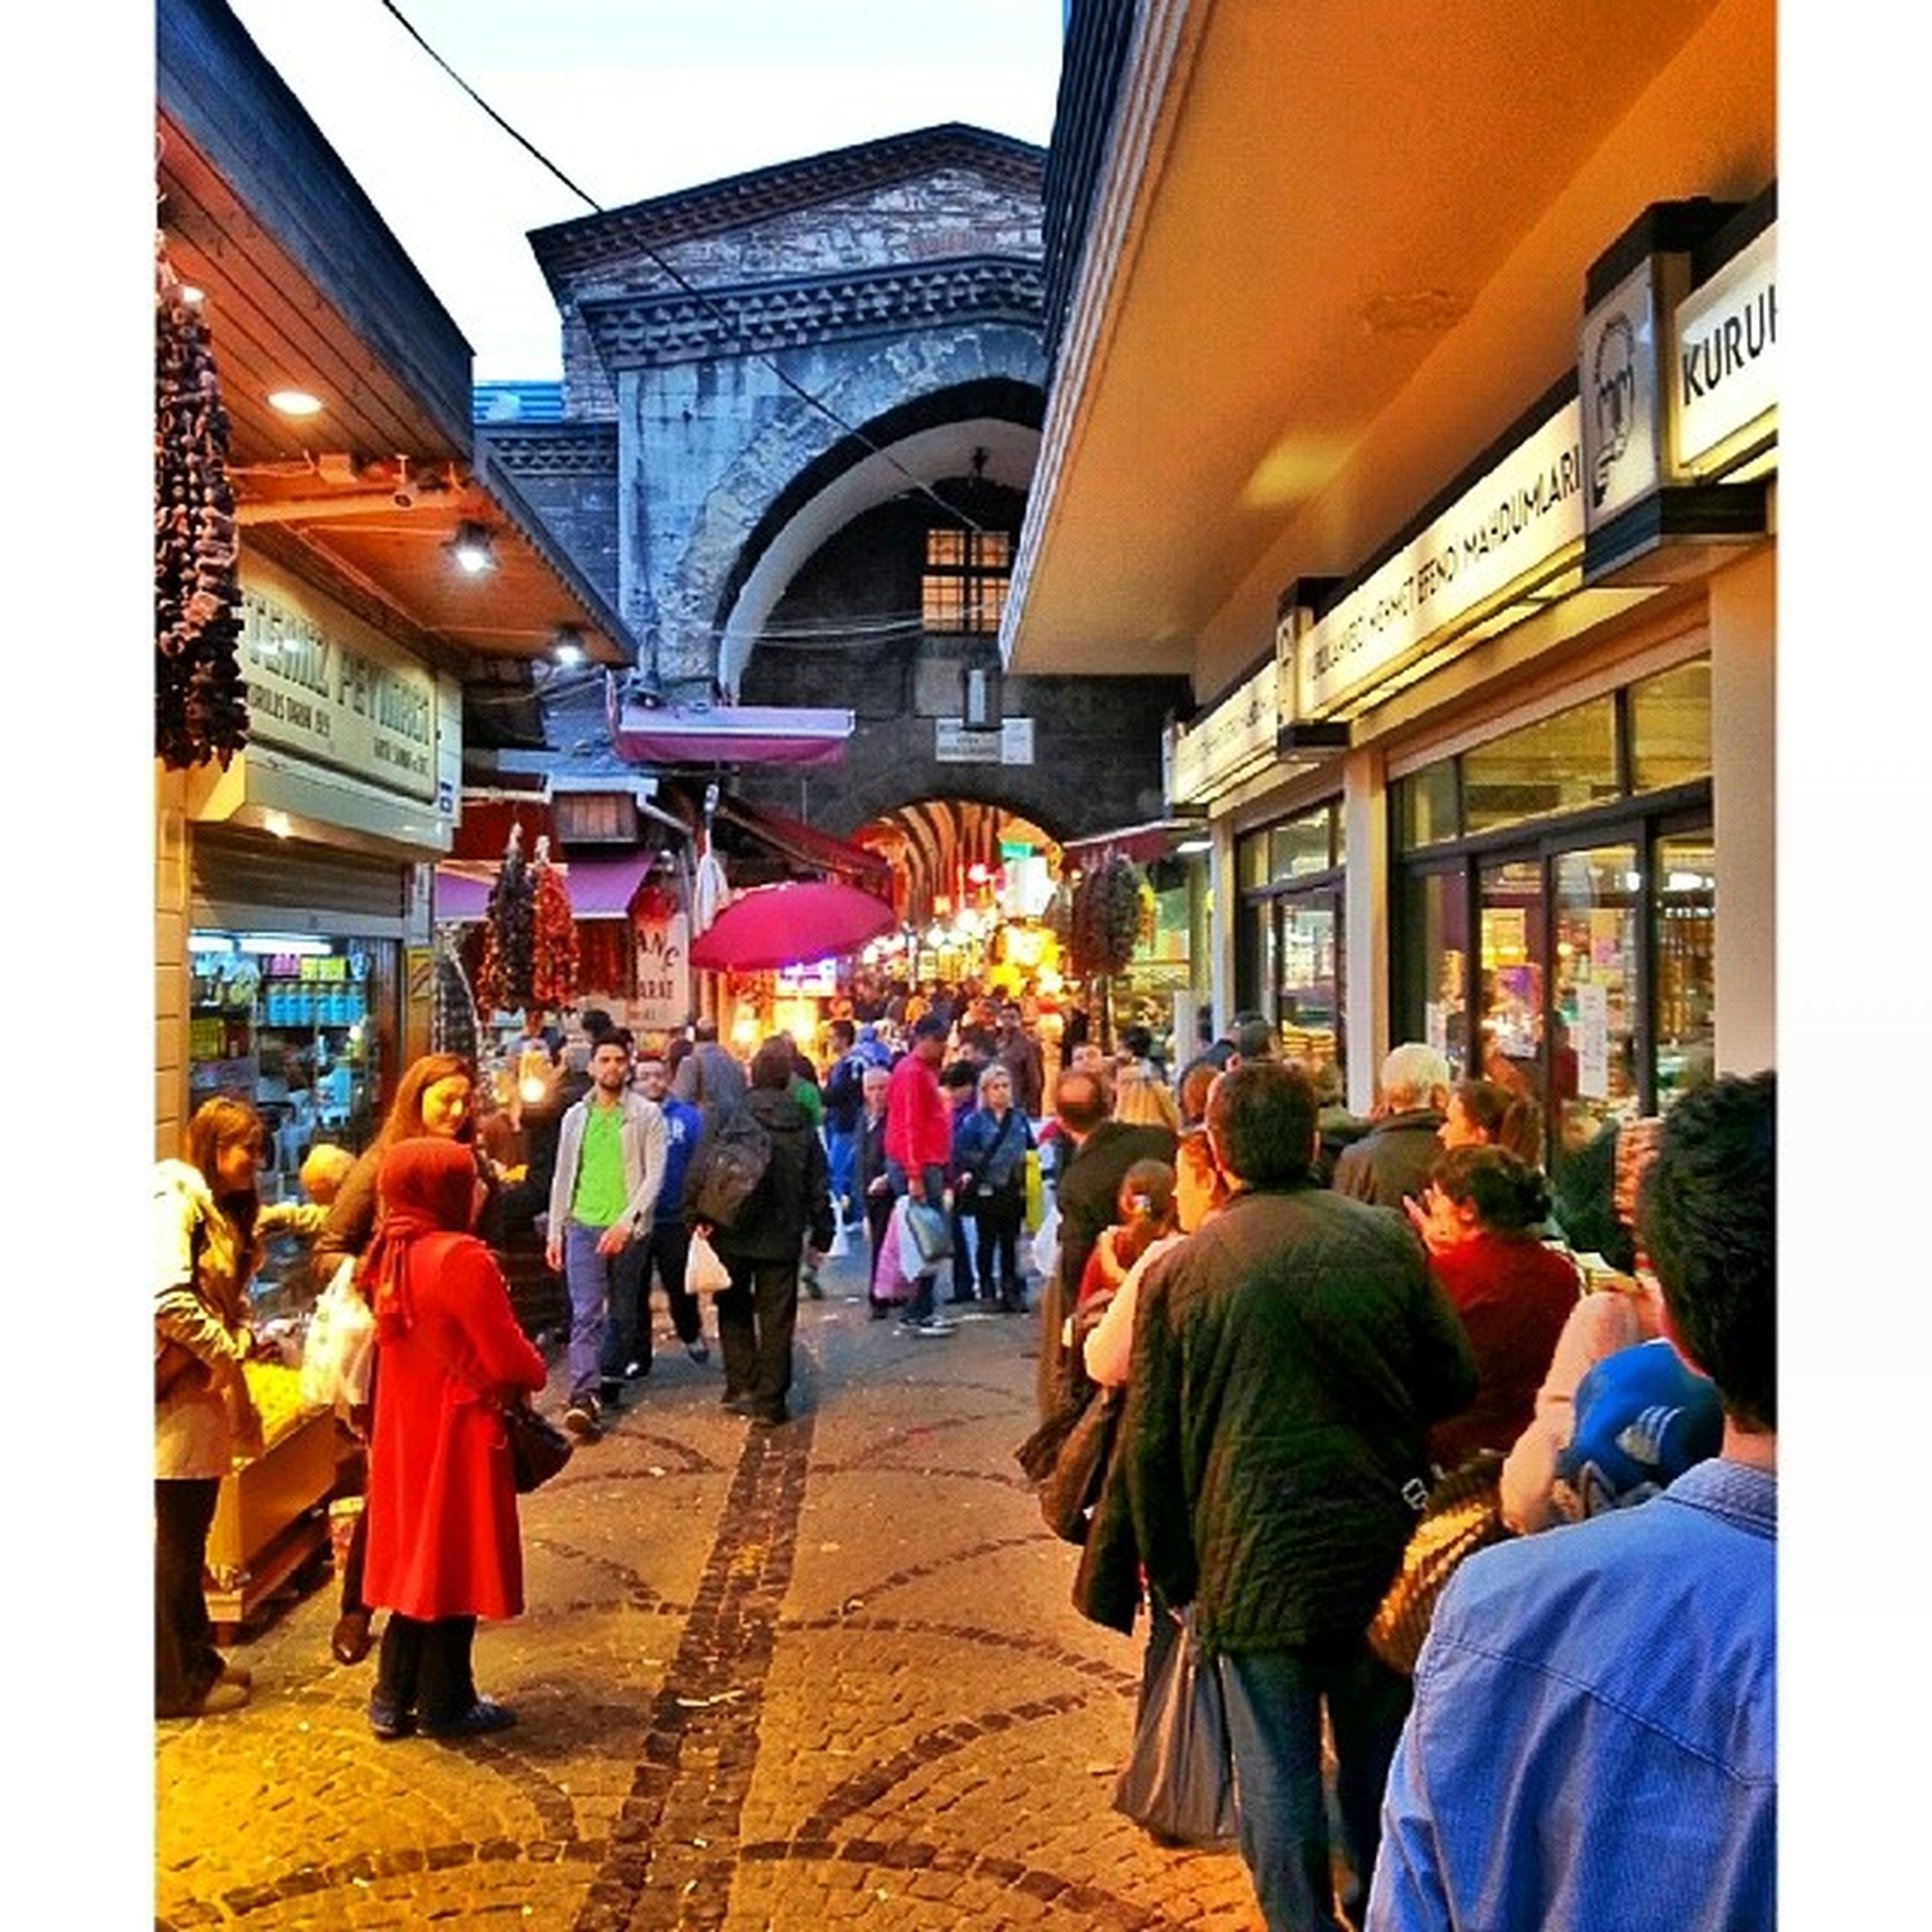 architecture, building exterior, built structure, men, person, large group of people, lifestyles, walking, city, street, city life, leisure activity, market, mixed age range, outdoors, rear view, market stall, building, medium group of people